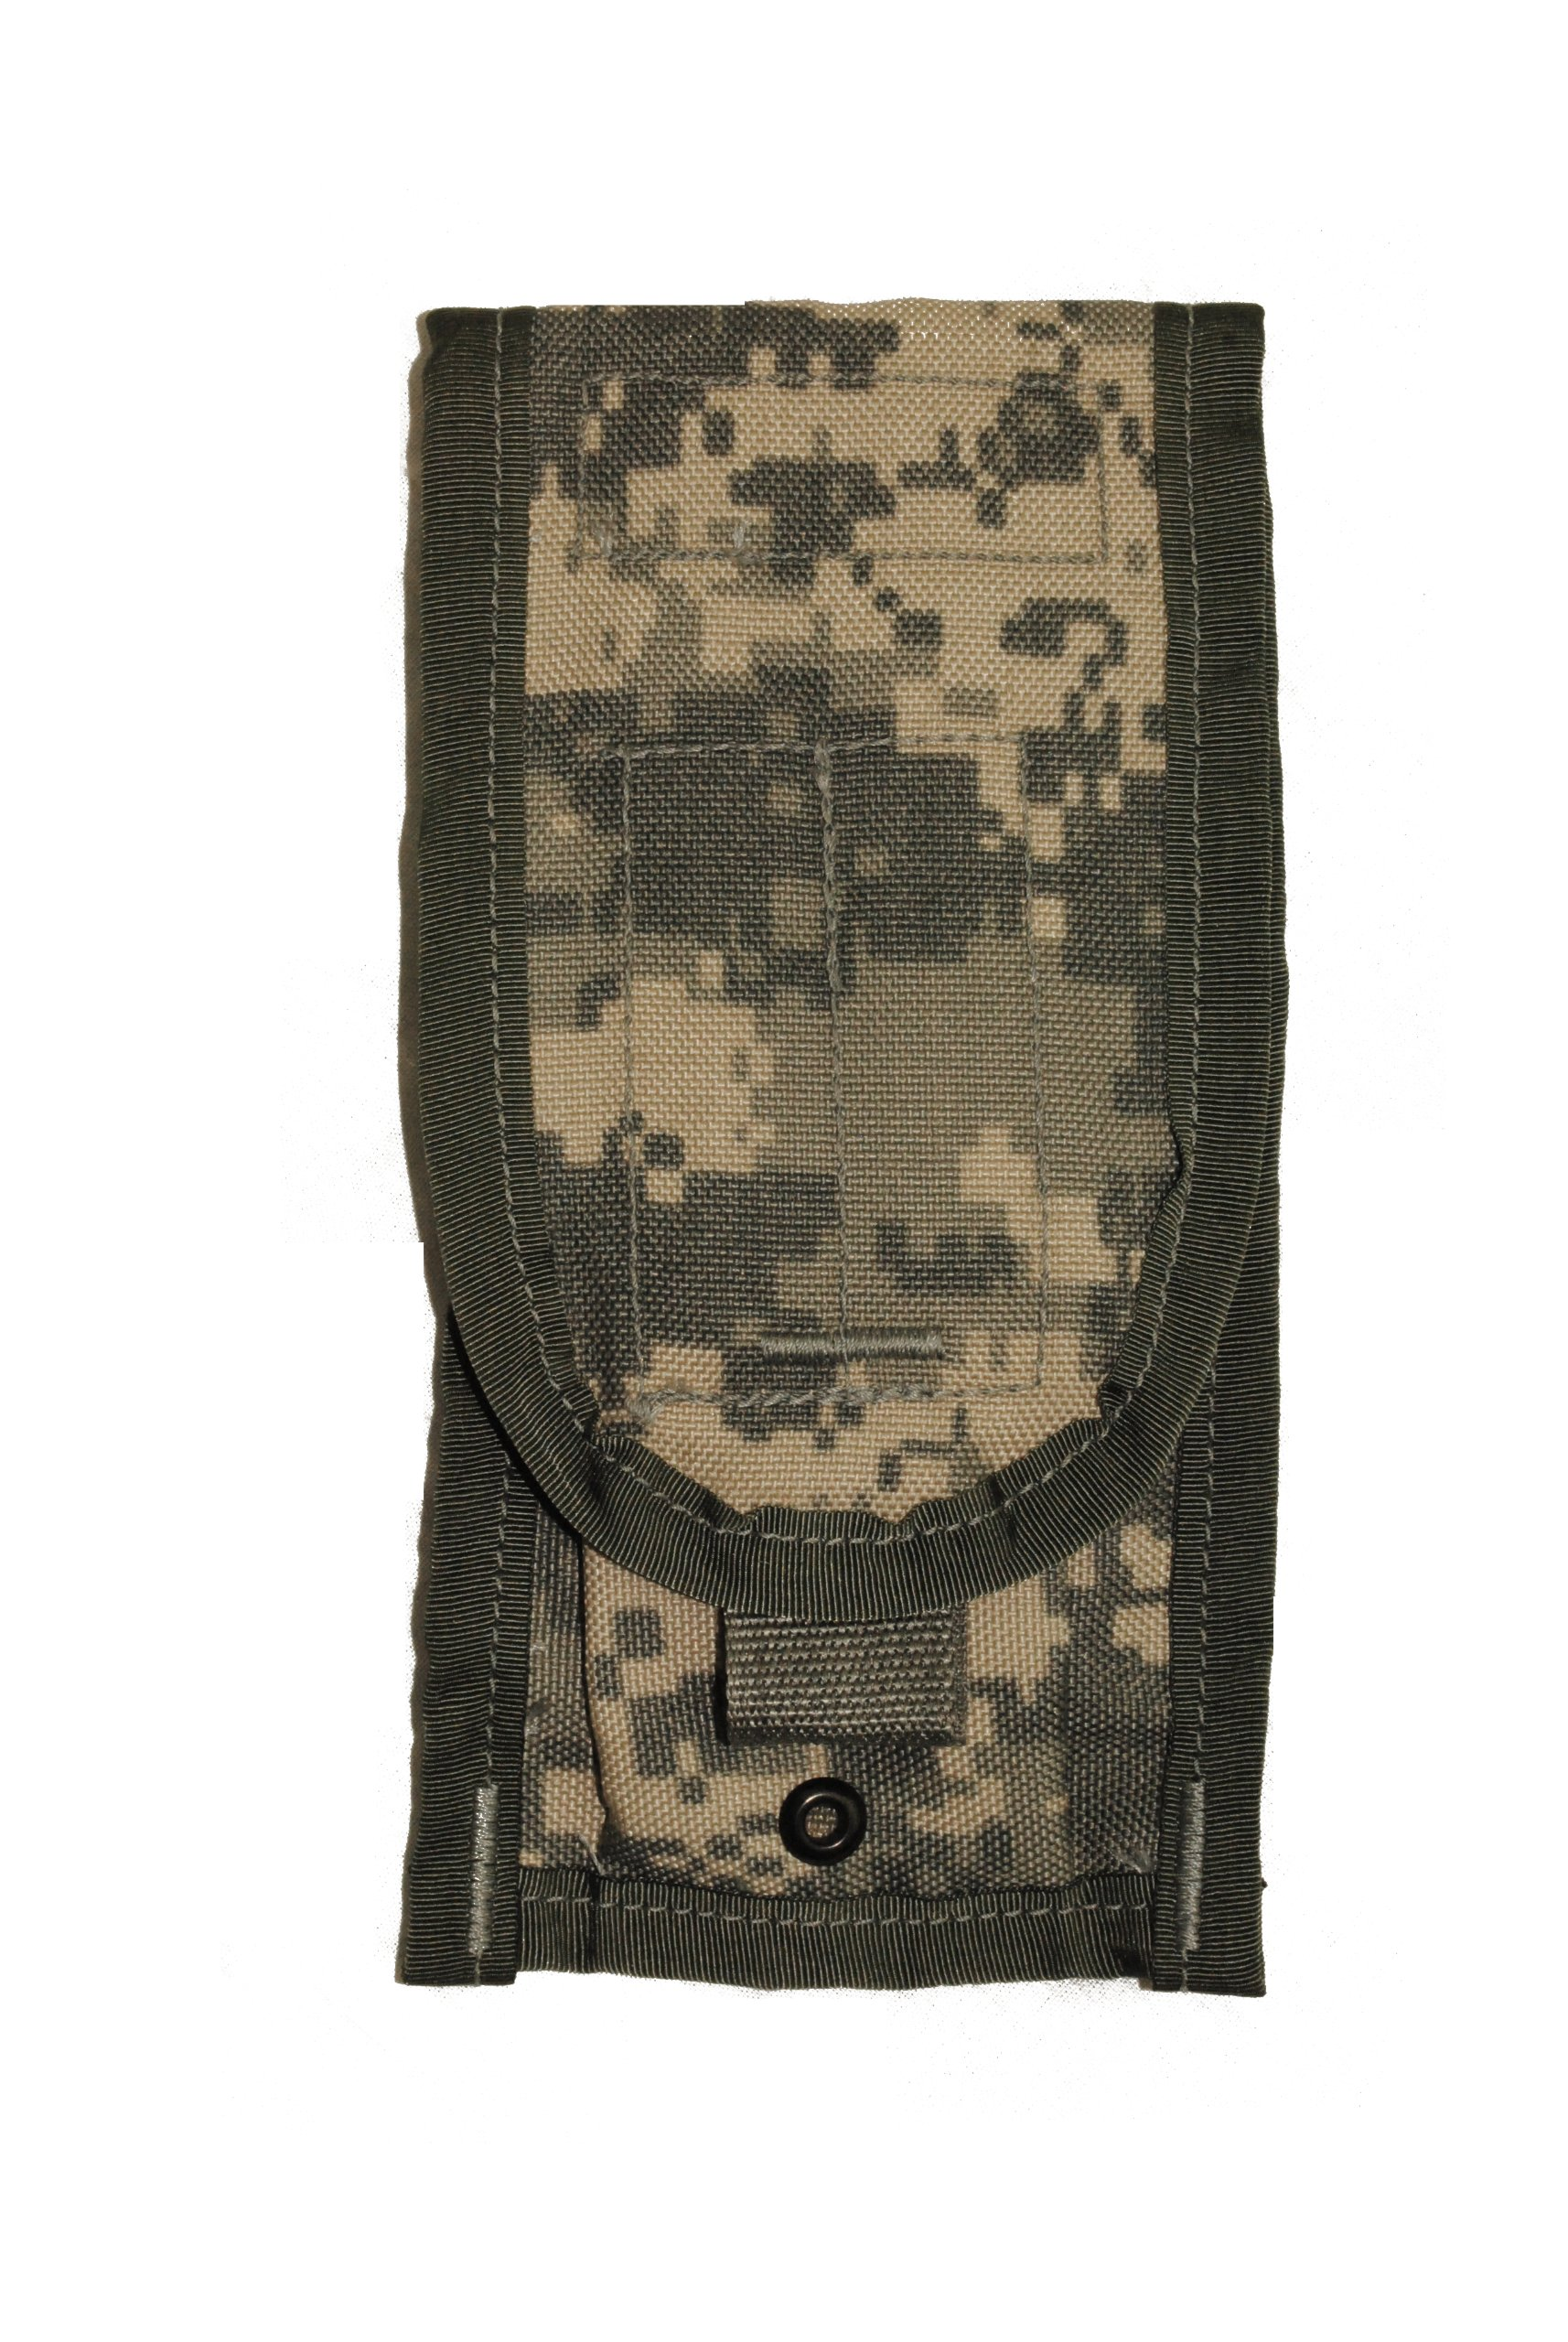 Genuine US Military GI M4 Double Mag Pouch Molle II AR15 M16 ACU Digital Camo Made In USA